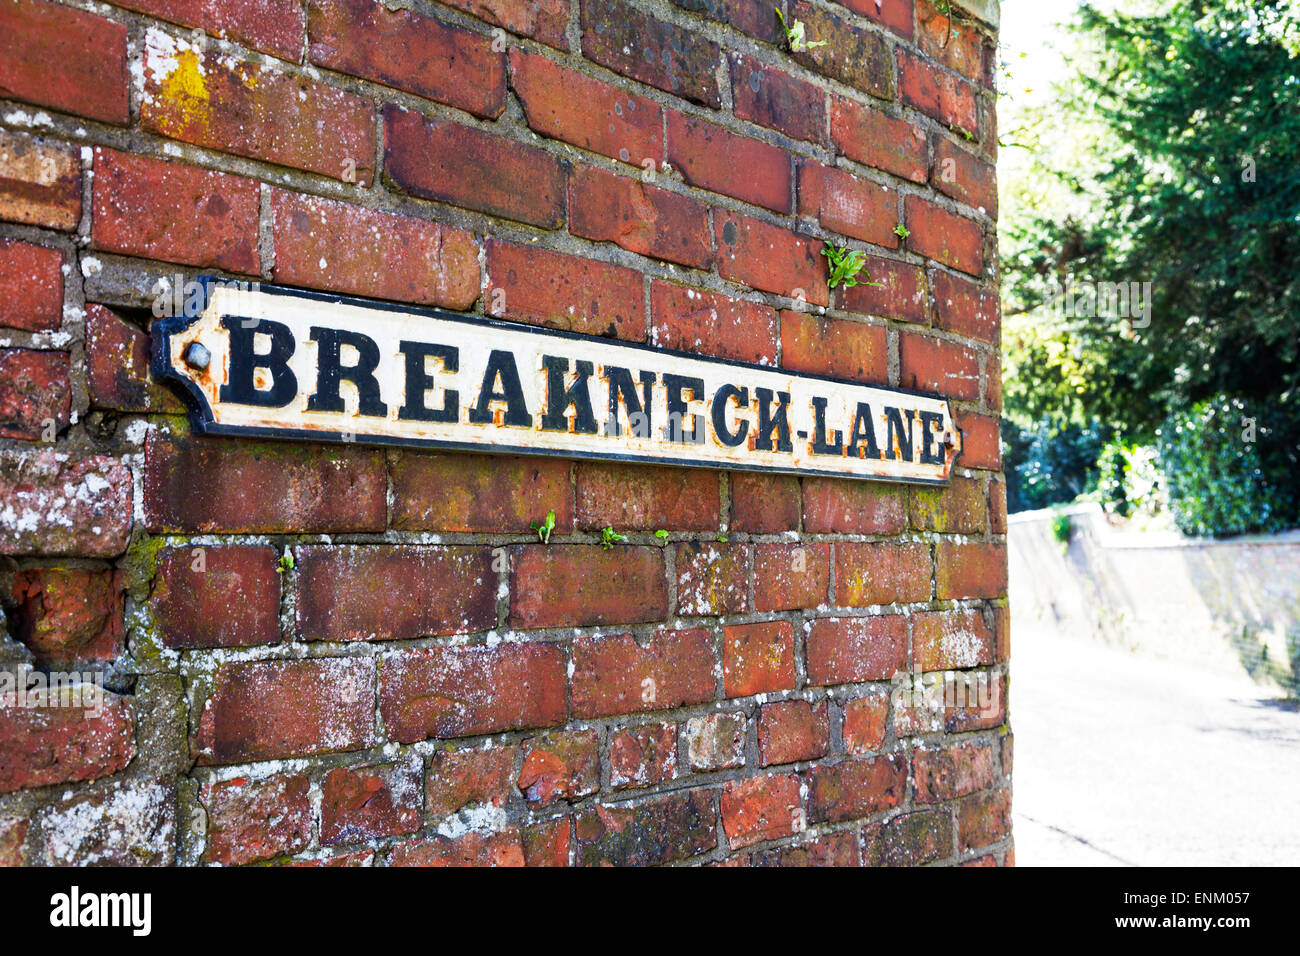 weird strange unusual funny amusing road street name sign signs 'Breakneck Lane' Louth Lincolnshire UK England - Stock Image